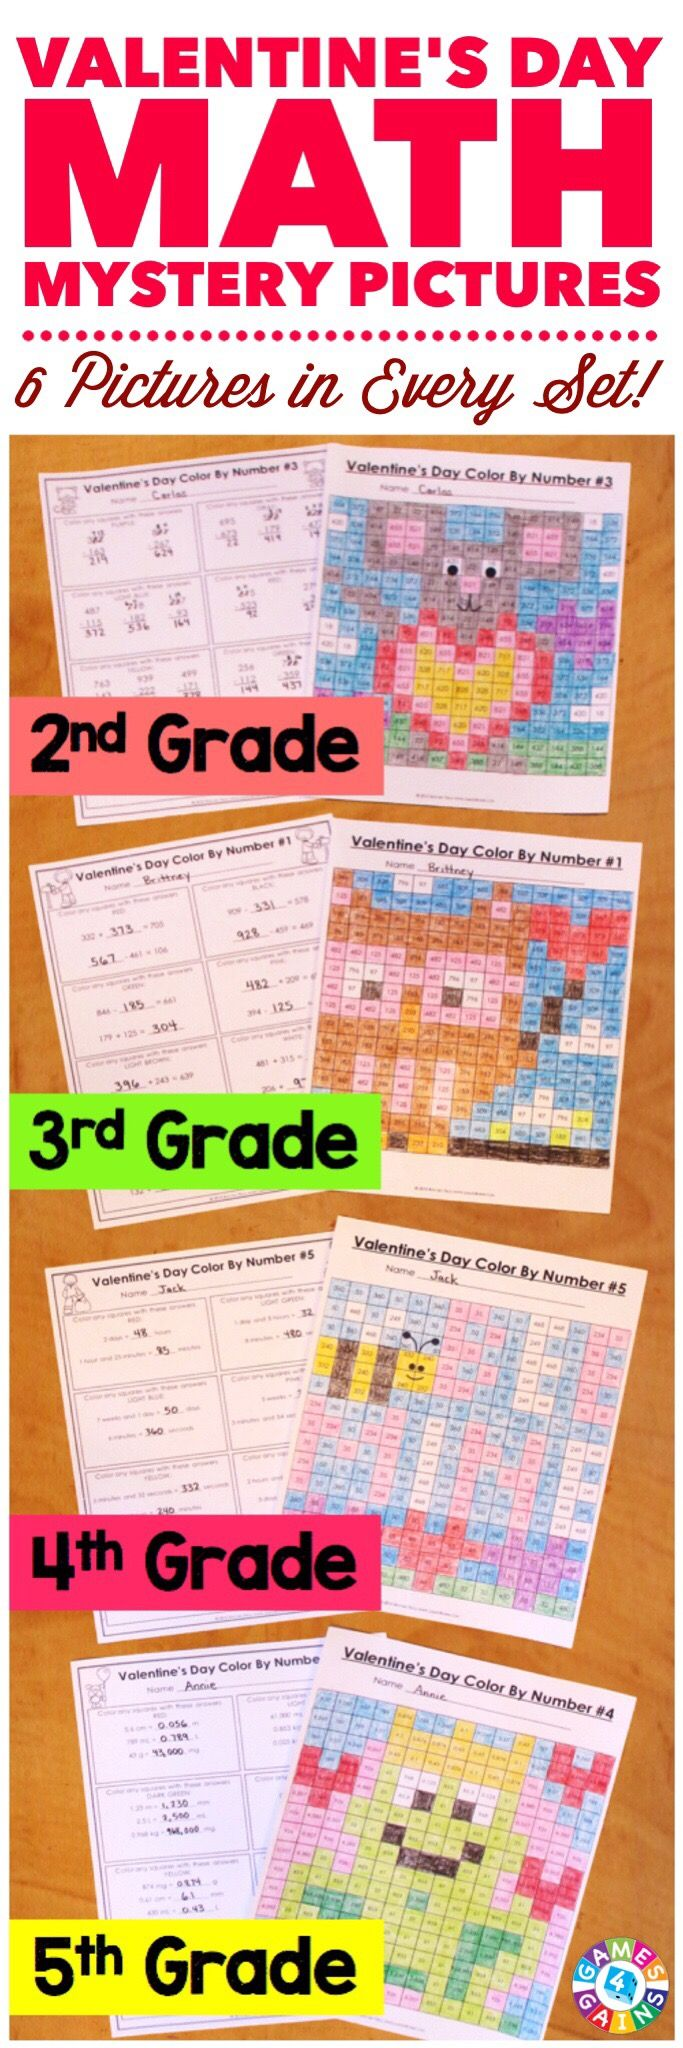 """""""My students LOVE these because they are fun to solve and color! I love them because it is a great review of the skills!"""" These Valentine's Day Math Color by Number Activities are the perfect way to review key math skills taught so far this year. Each set comes with 6 different pictures, and each picture focuses on a different skill. Different versions available for 2nd, 3rd, 4th, and 5th grades."""